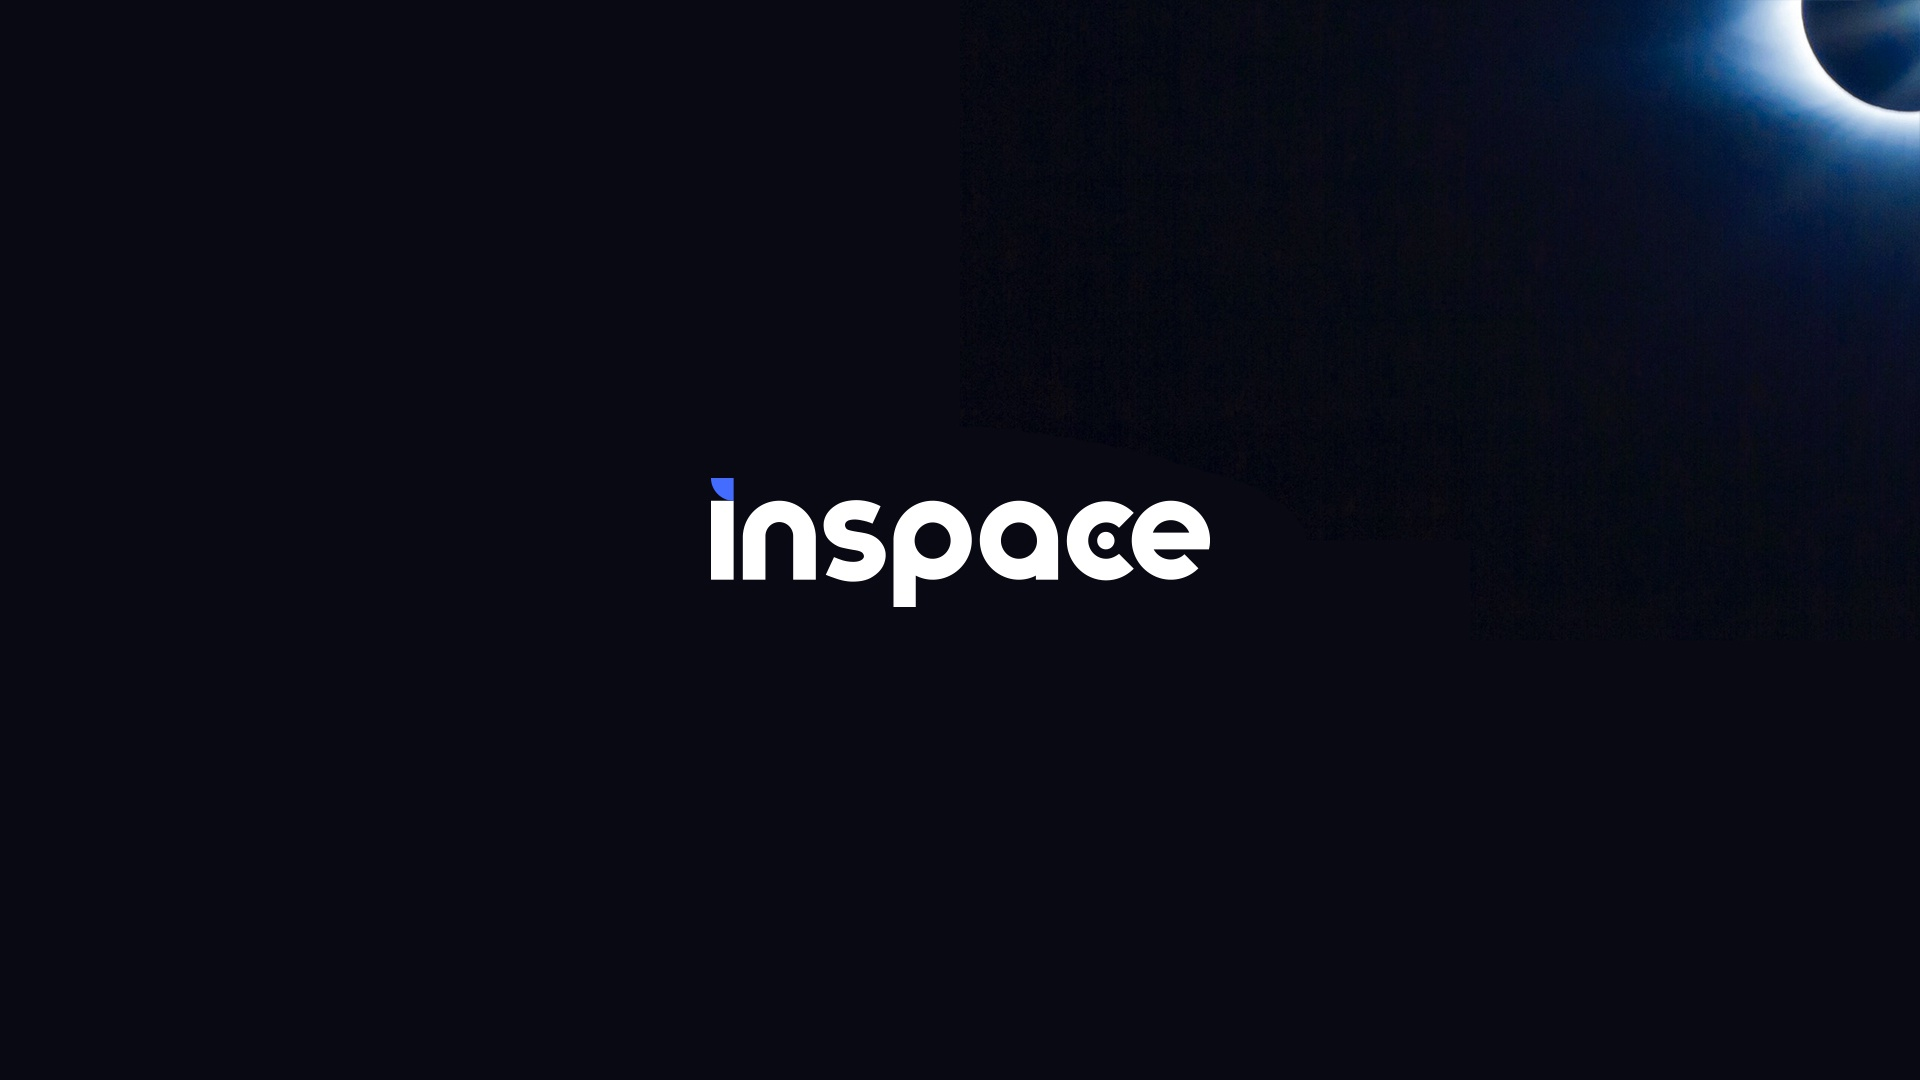 Wallpaper inspace2